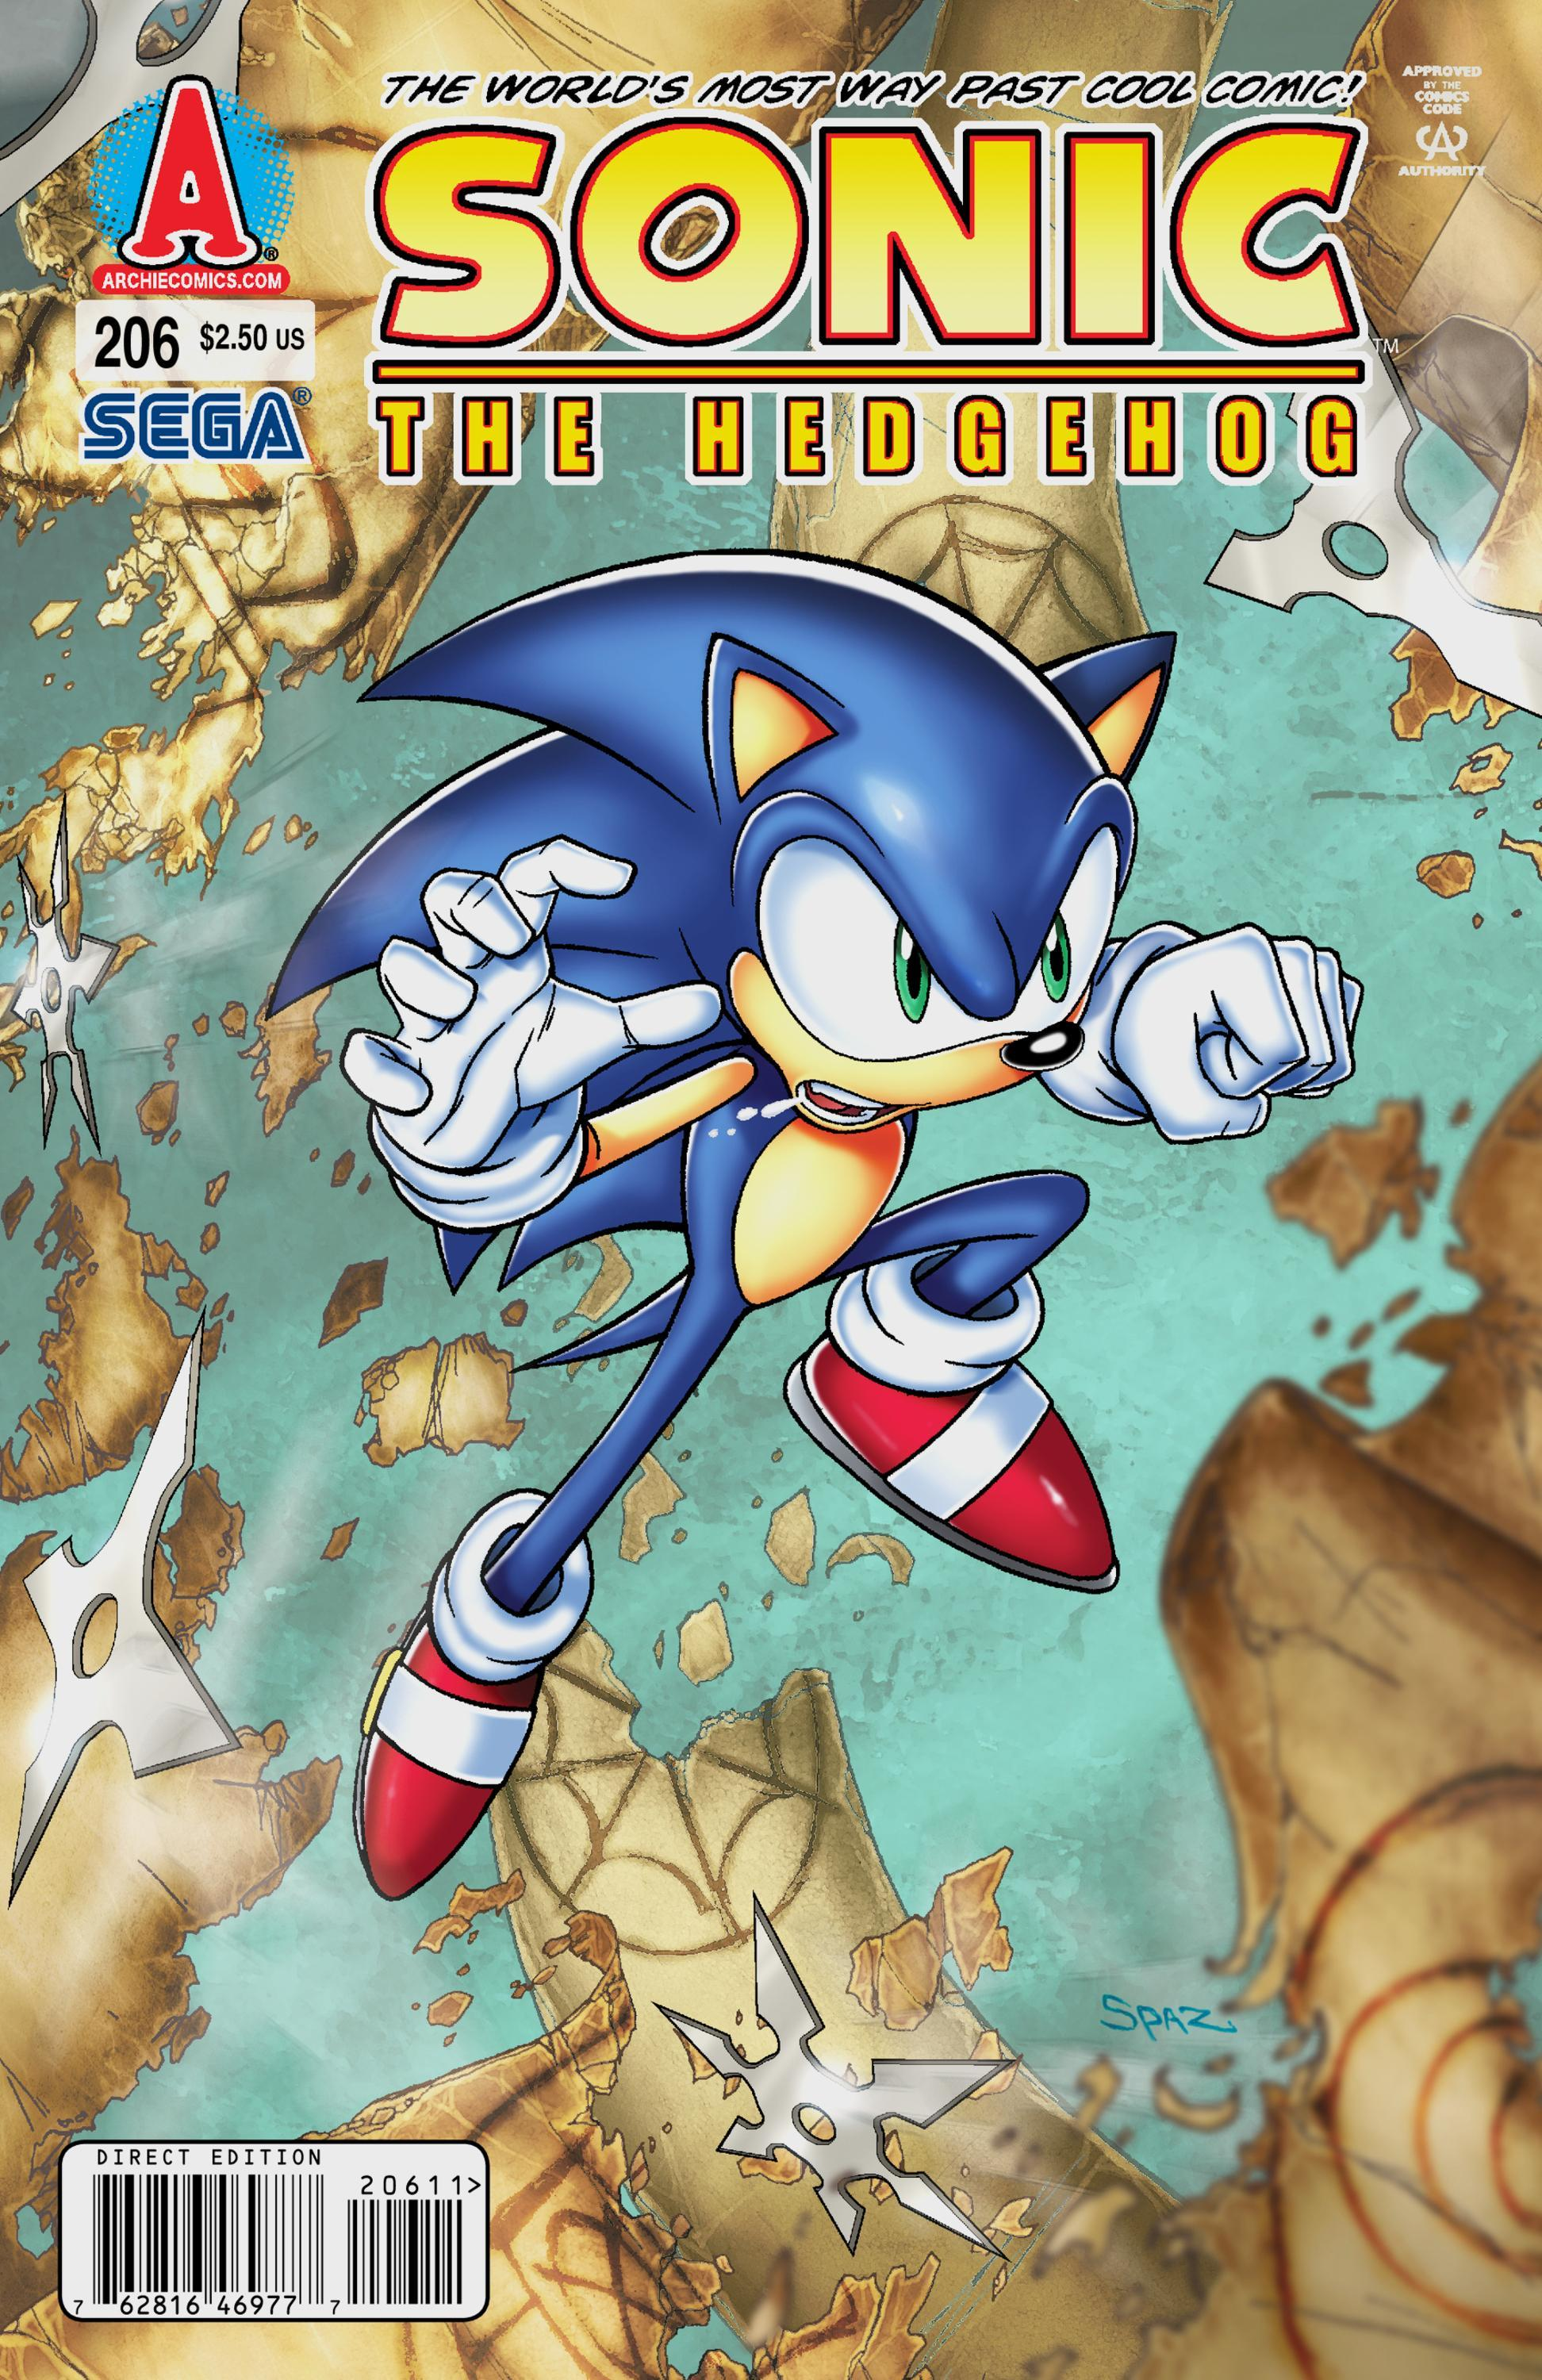 Archie Sonic the Hedgehog Issue 206